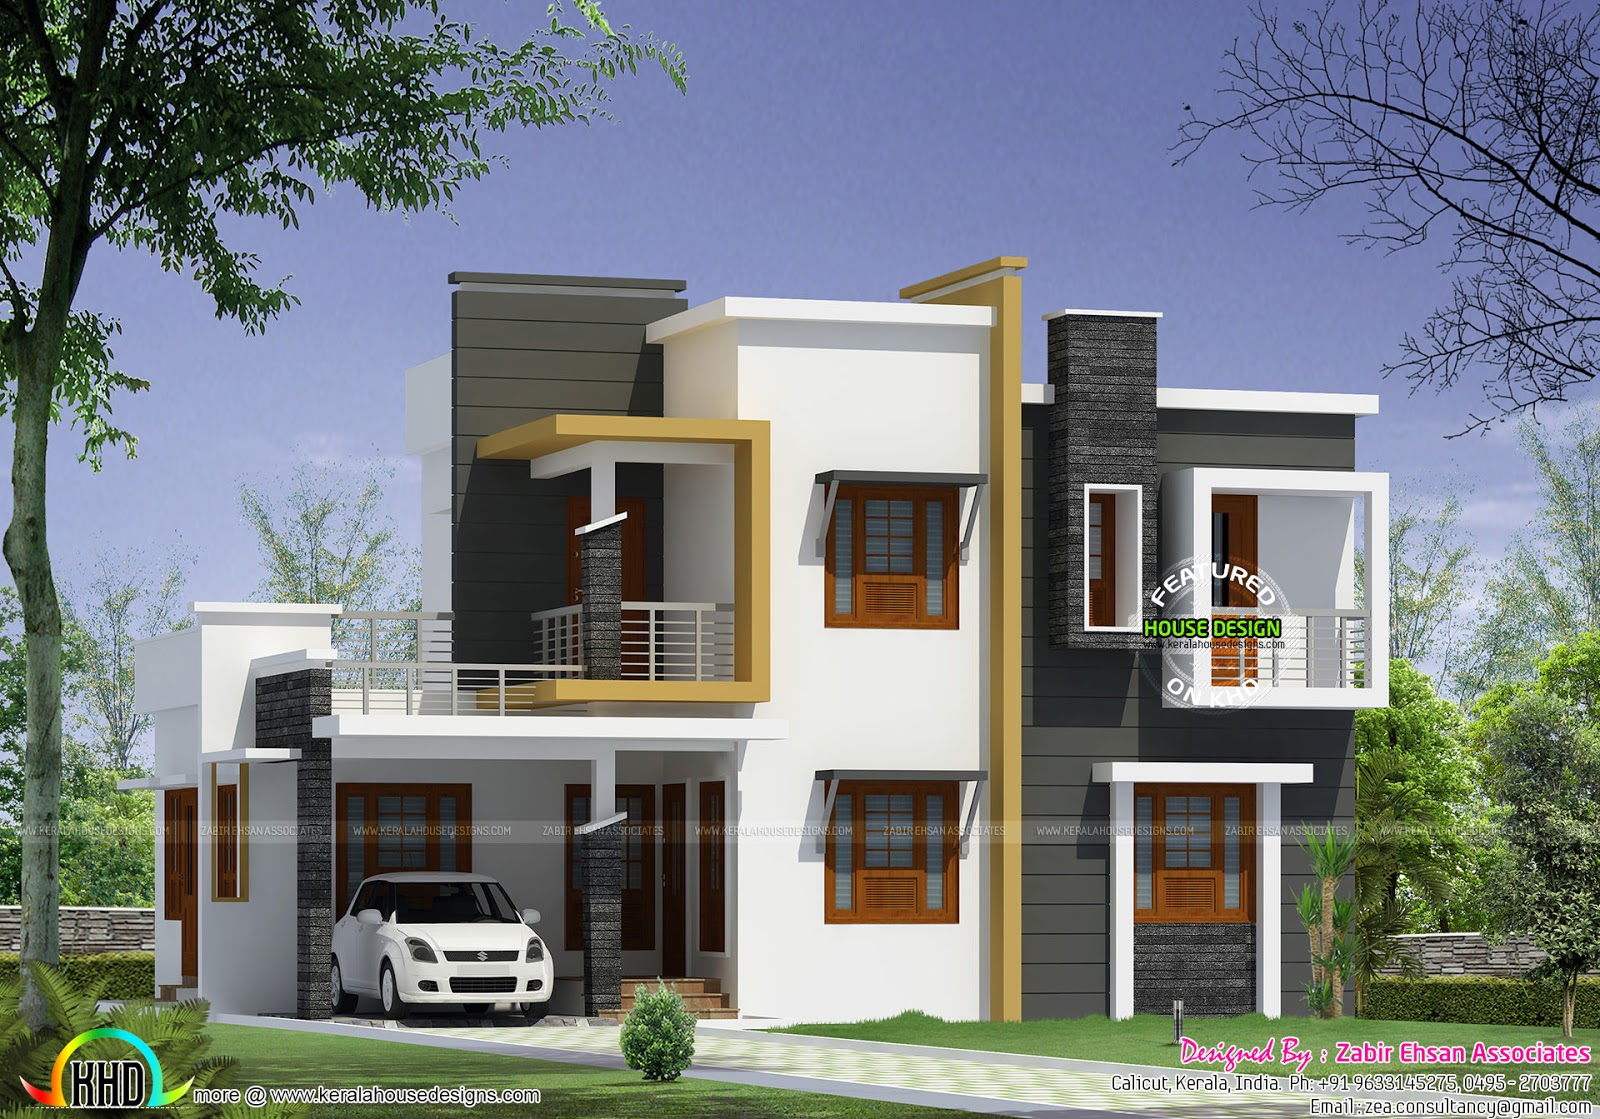 Box type modern house plan kerala home design and floor for New modern style homes